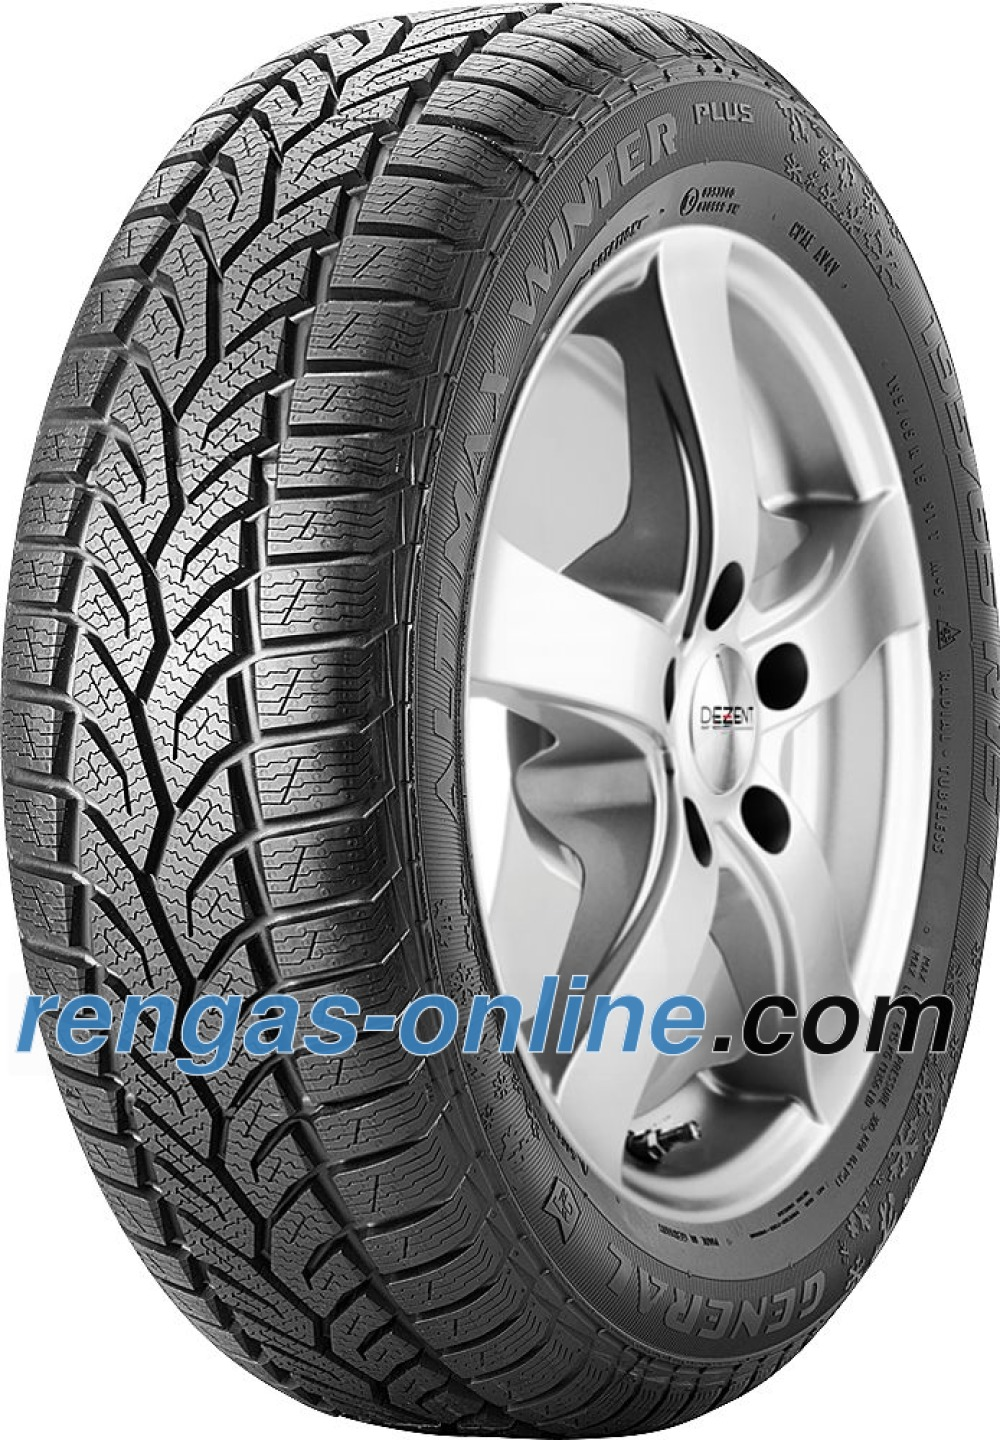 general-altimax-winter-plus-22550-r17-98v-xl-vannealueen-ripalla